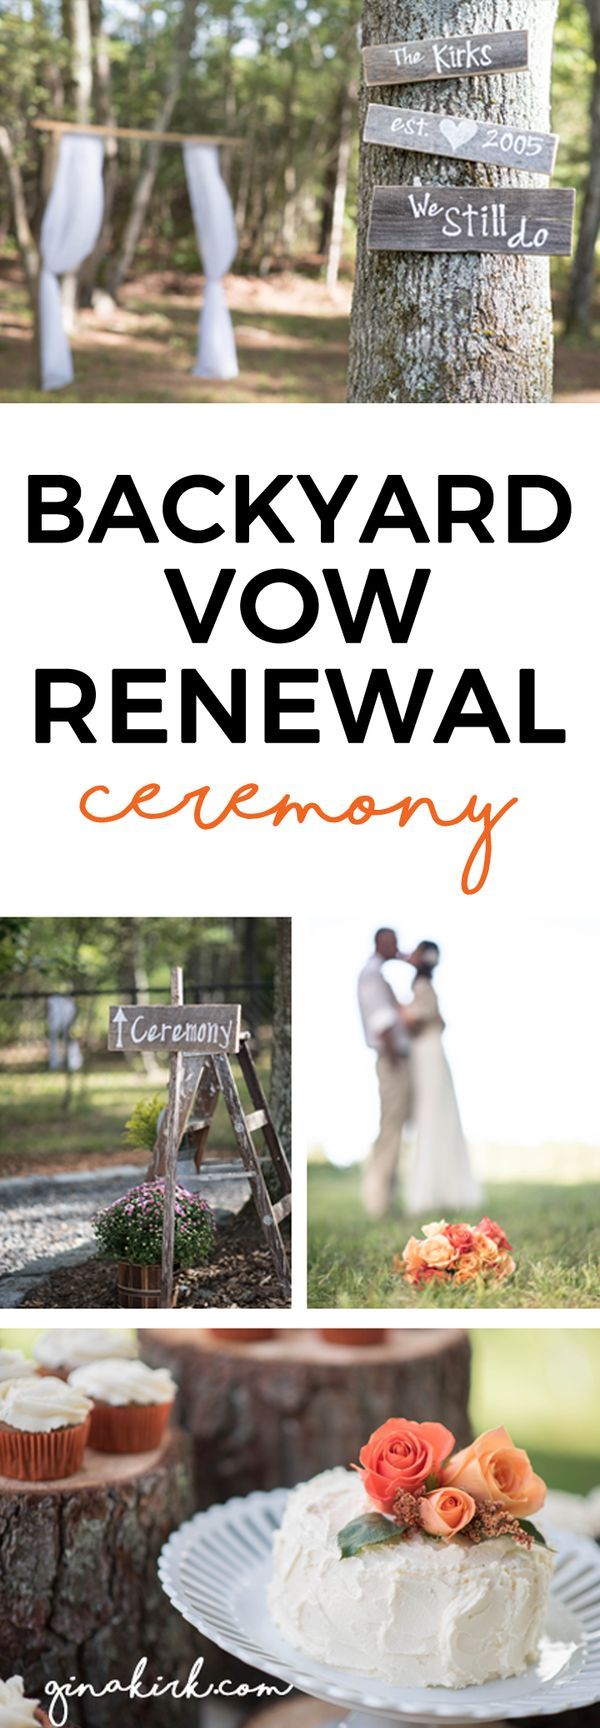 Celebrating 10 Years Our Backyard Vow Renewal Wedding